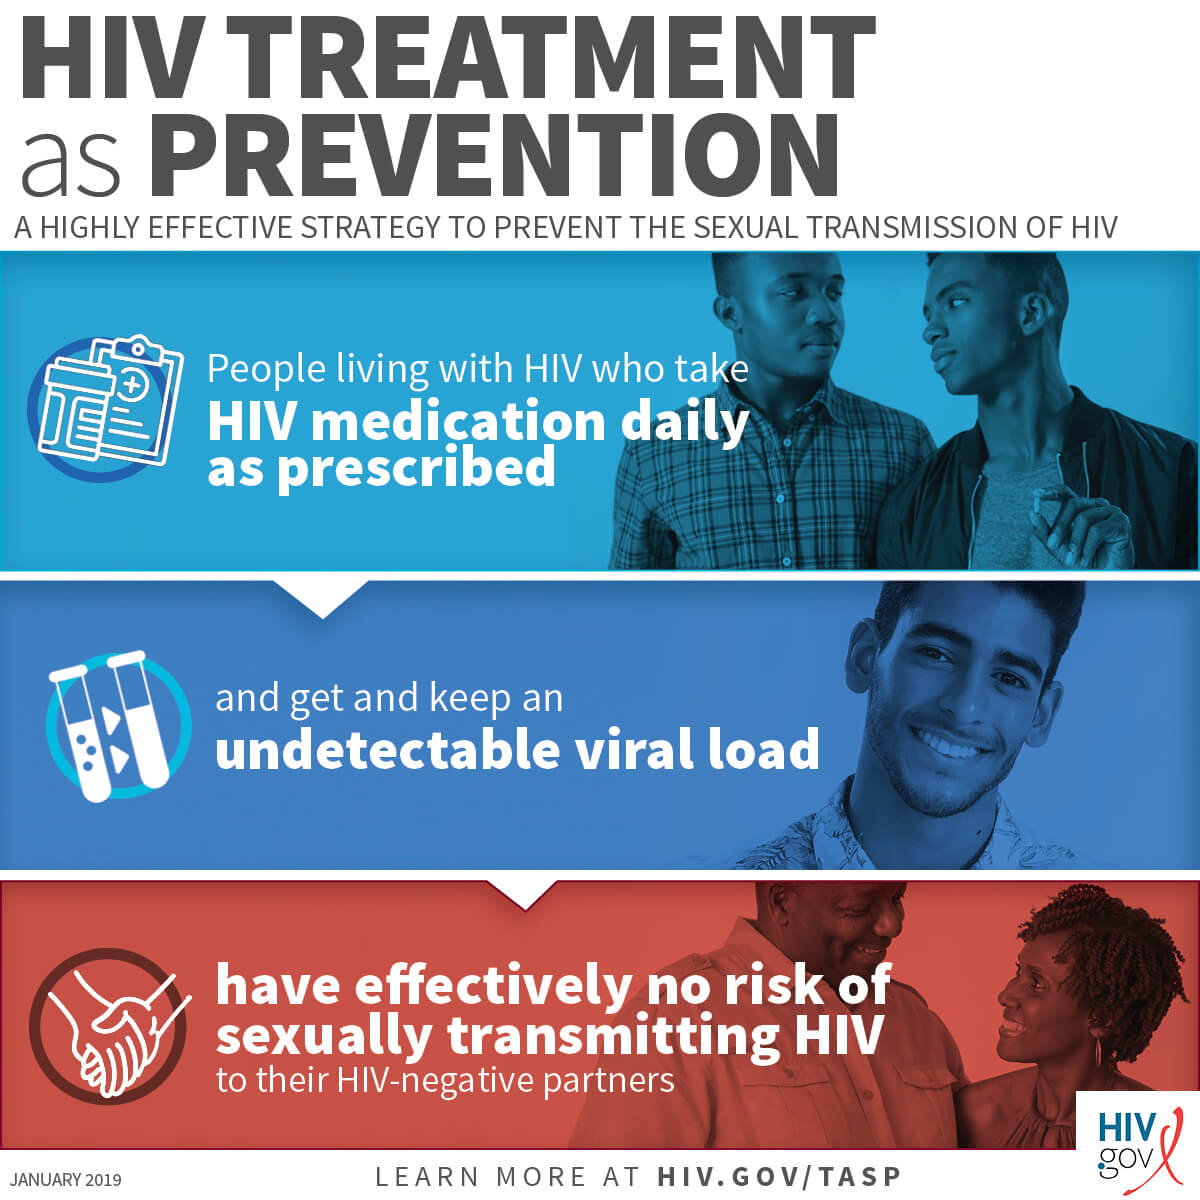 HIV Treatment as Prevention. A highly effective strategy to prevent the sexual transmission of HIV.